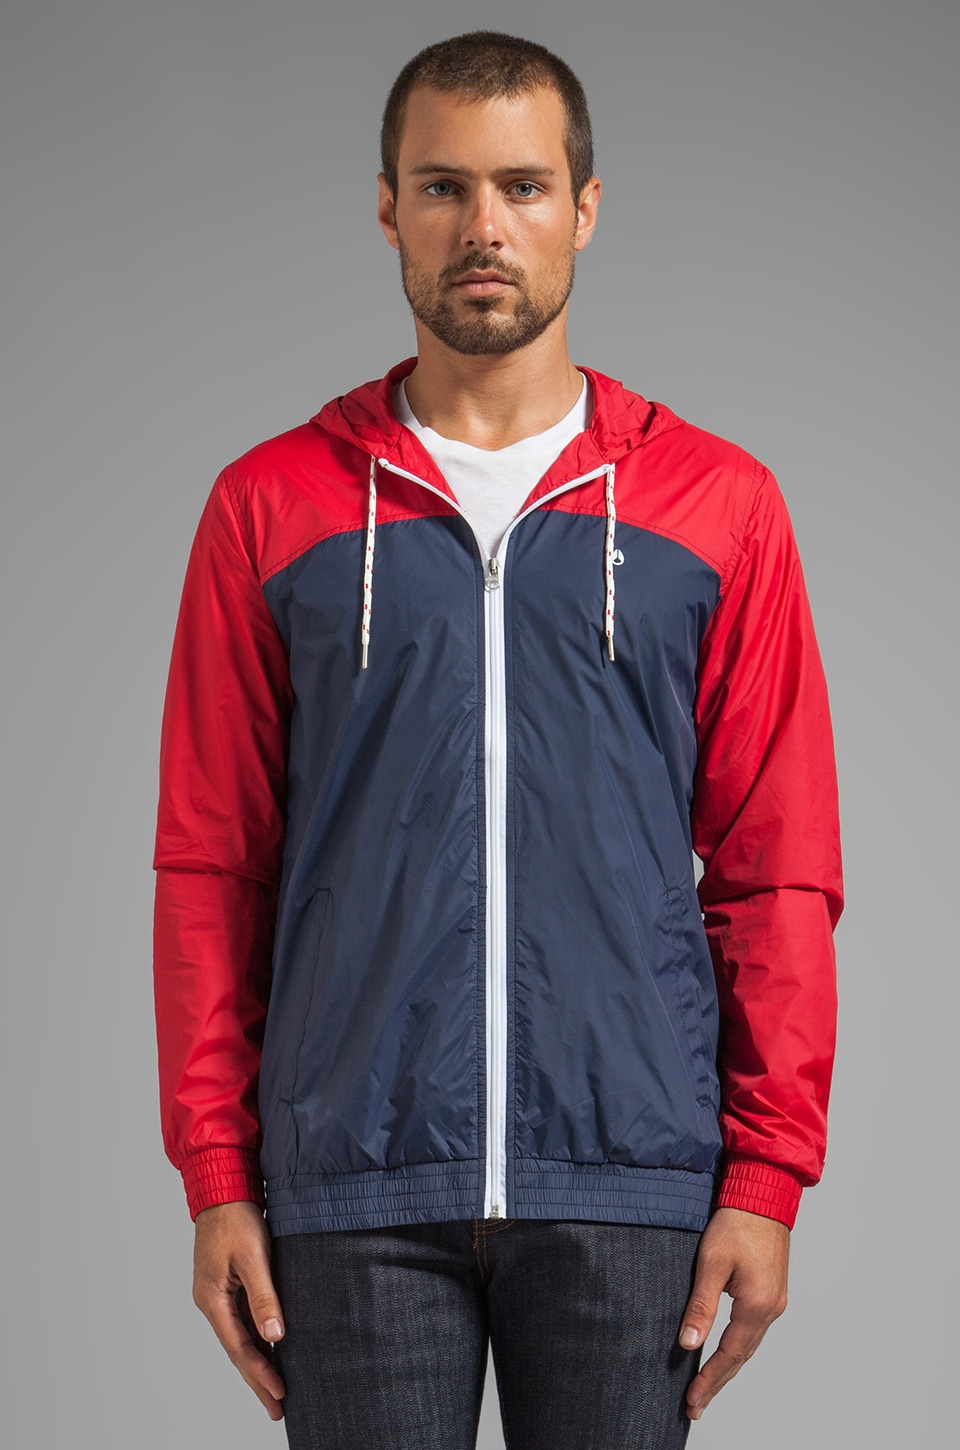 Nixon Brighton Jacket in Steel Blue/Red/White